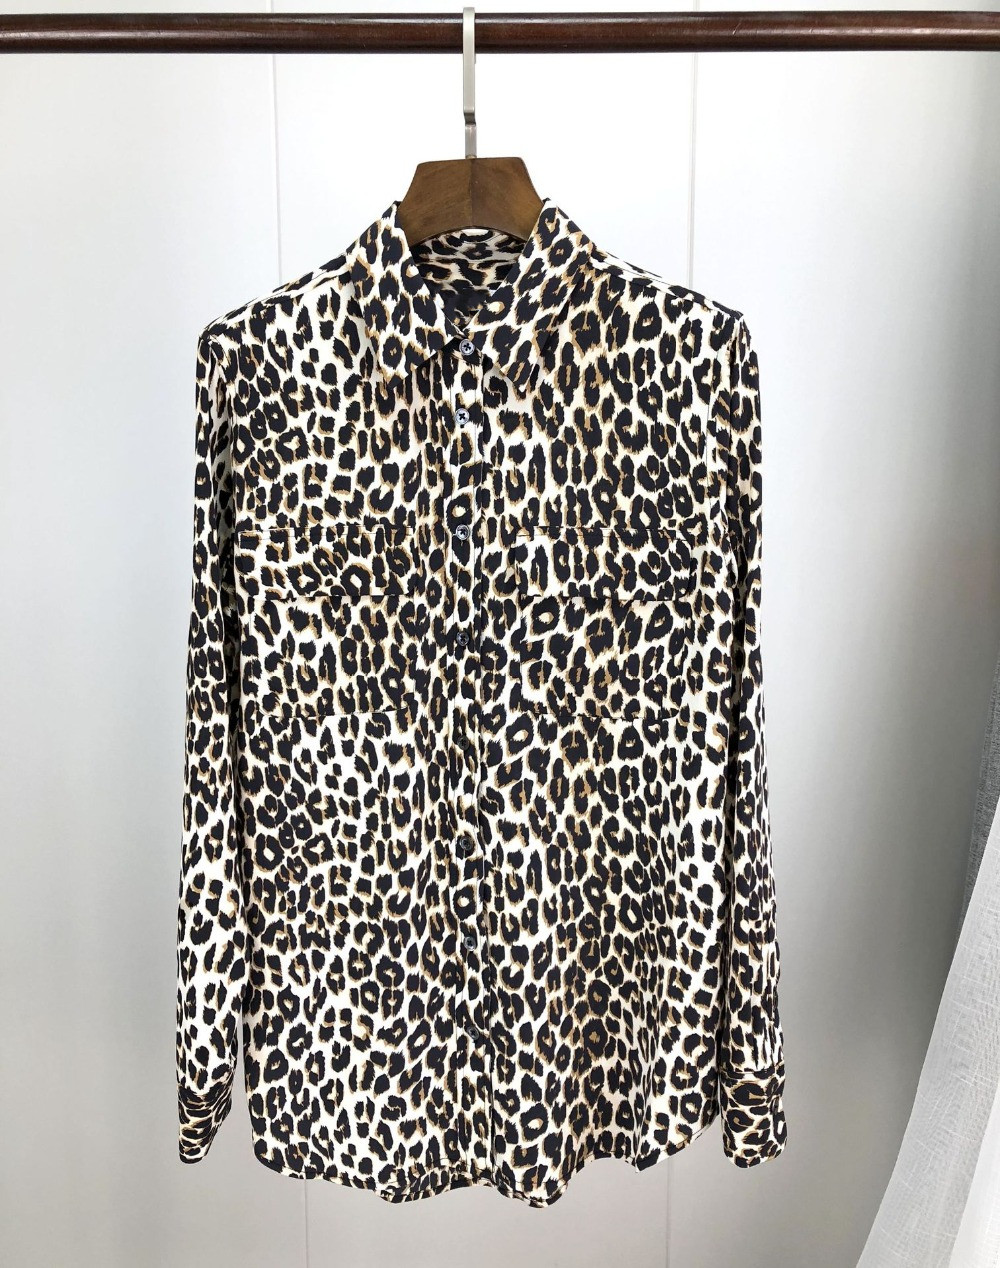 Spring Women Silk Shirt Leopard Print Long Sleeve with Pocket Blouse Top 2019 New